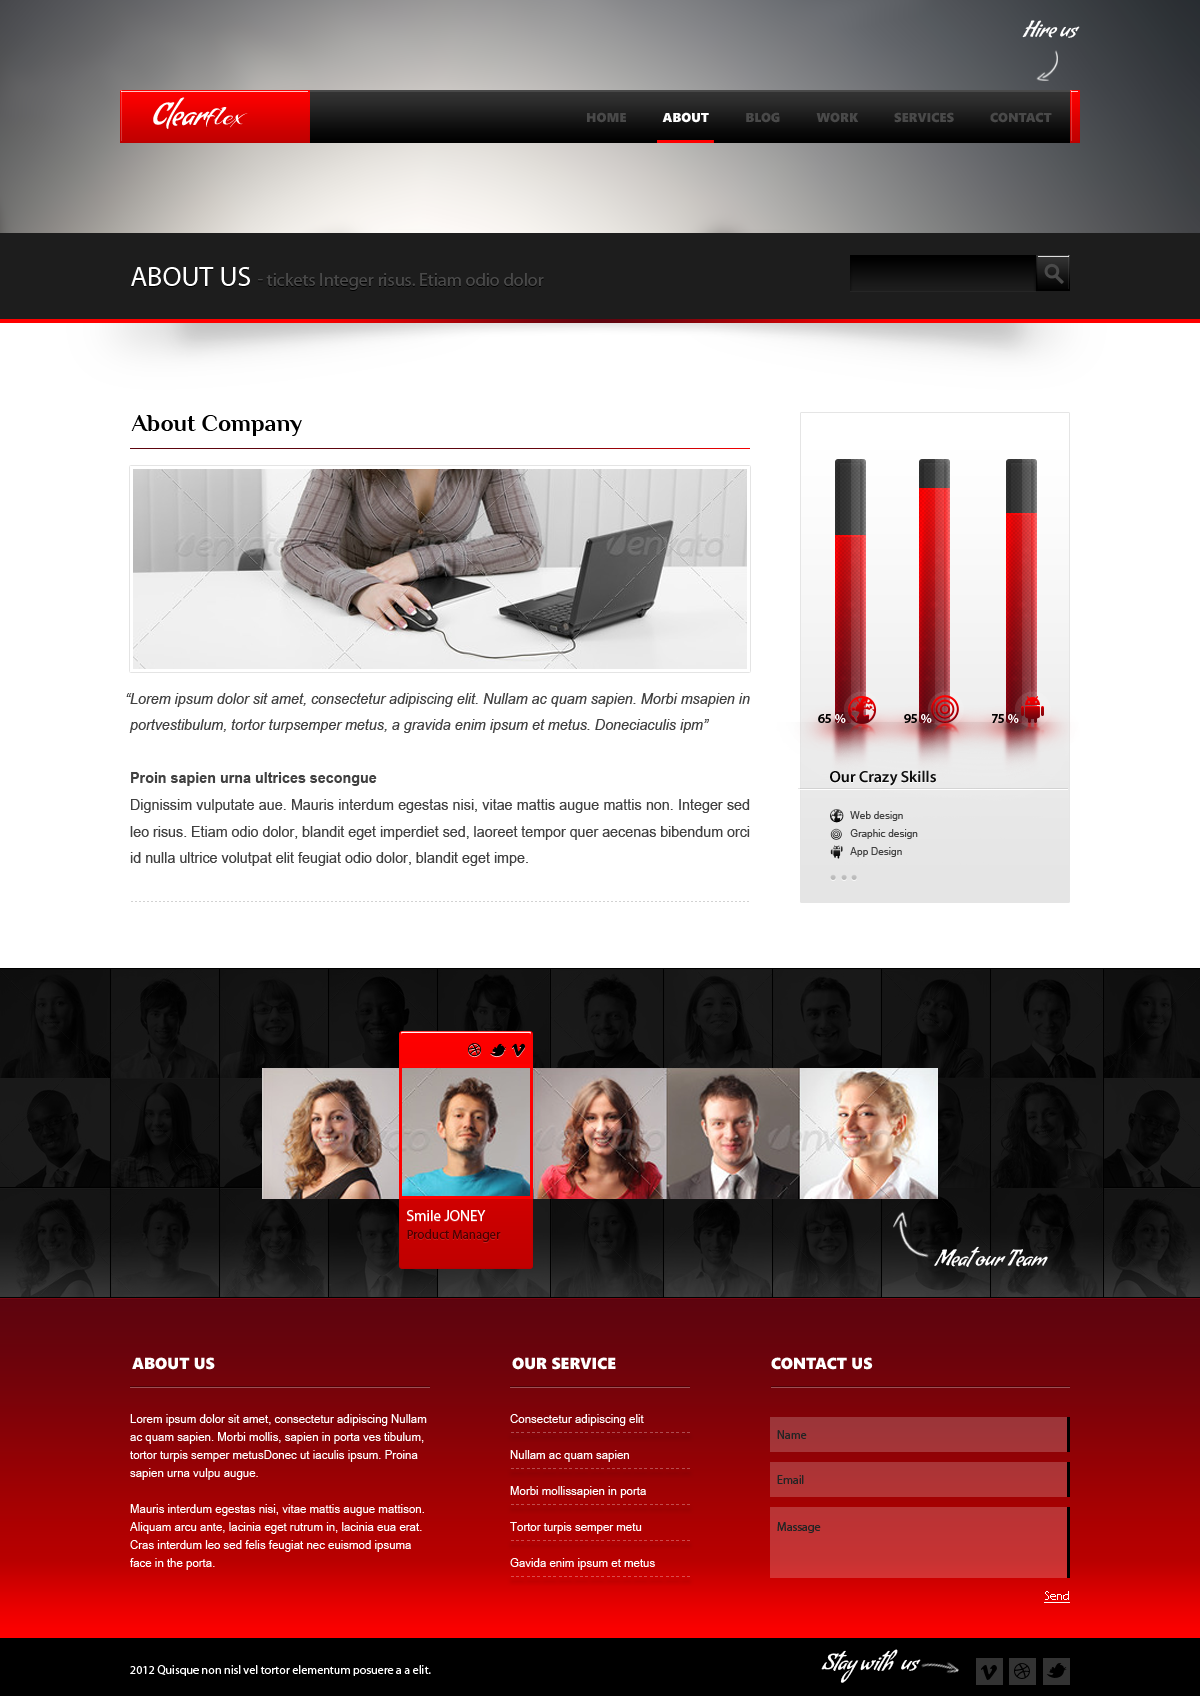 Clearflex PSD Templates - 05_About page